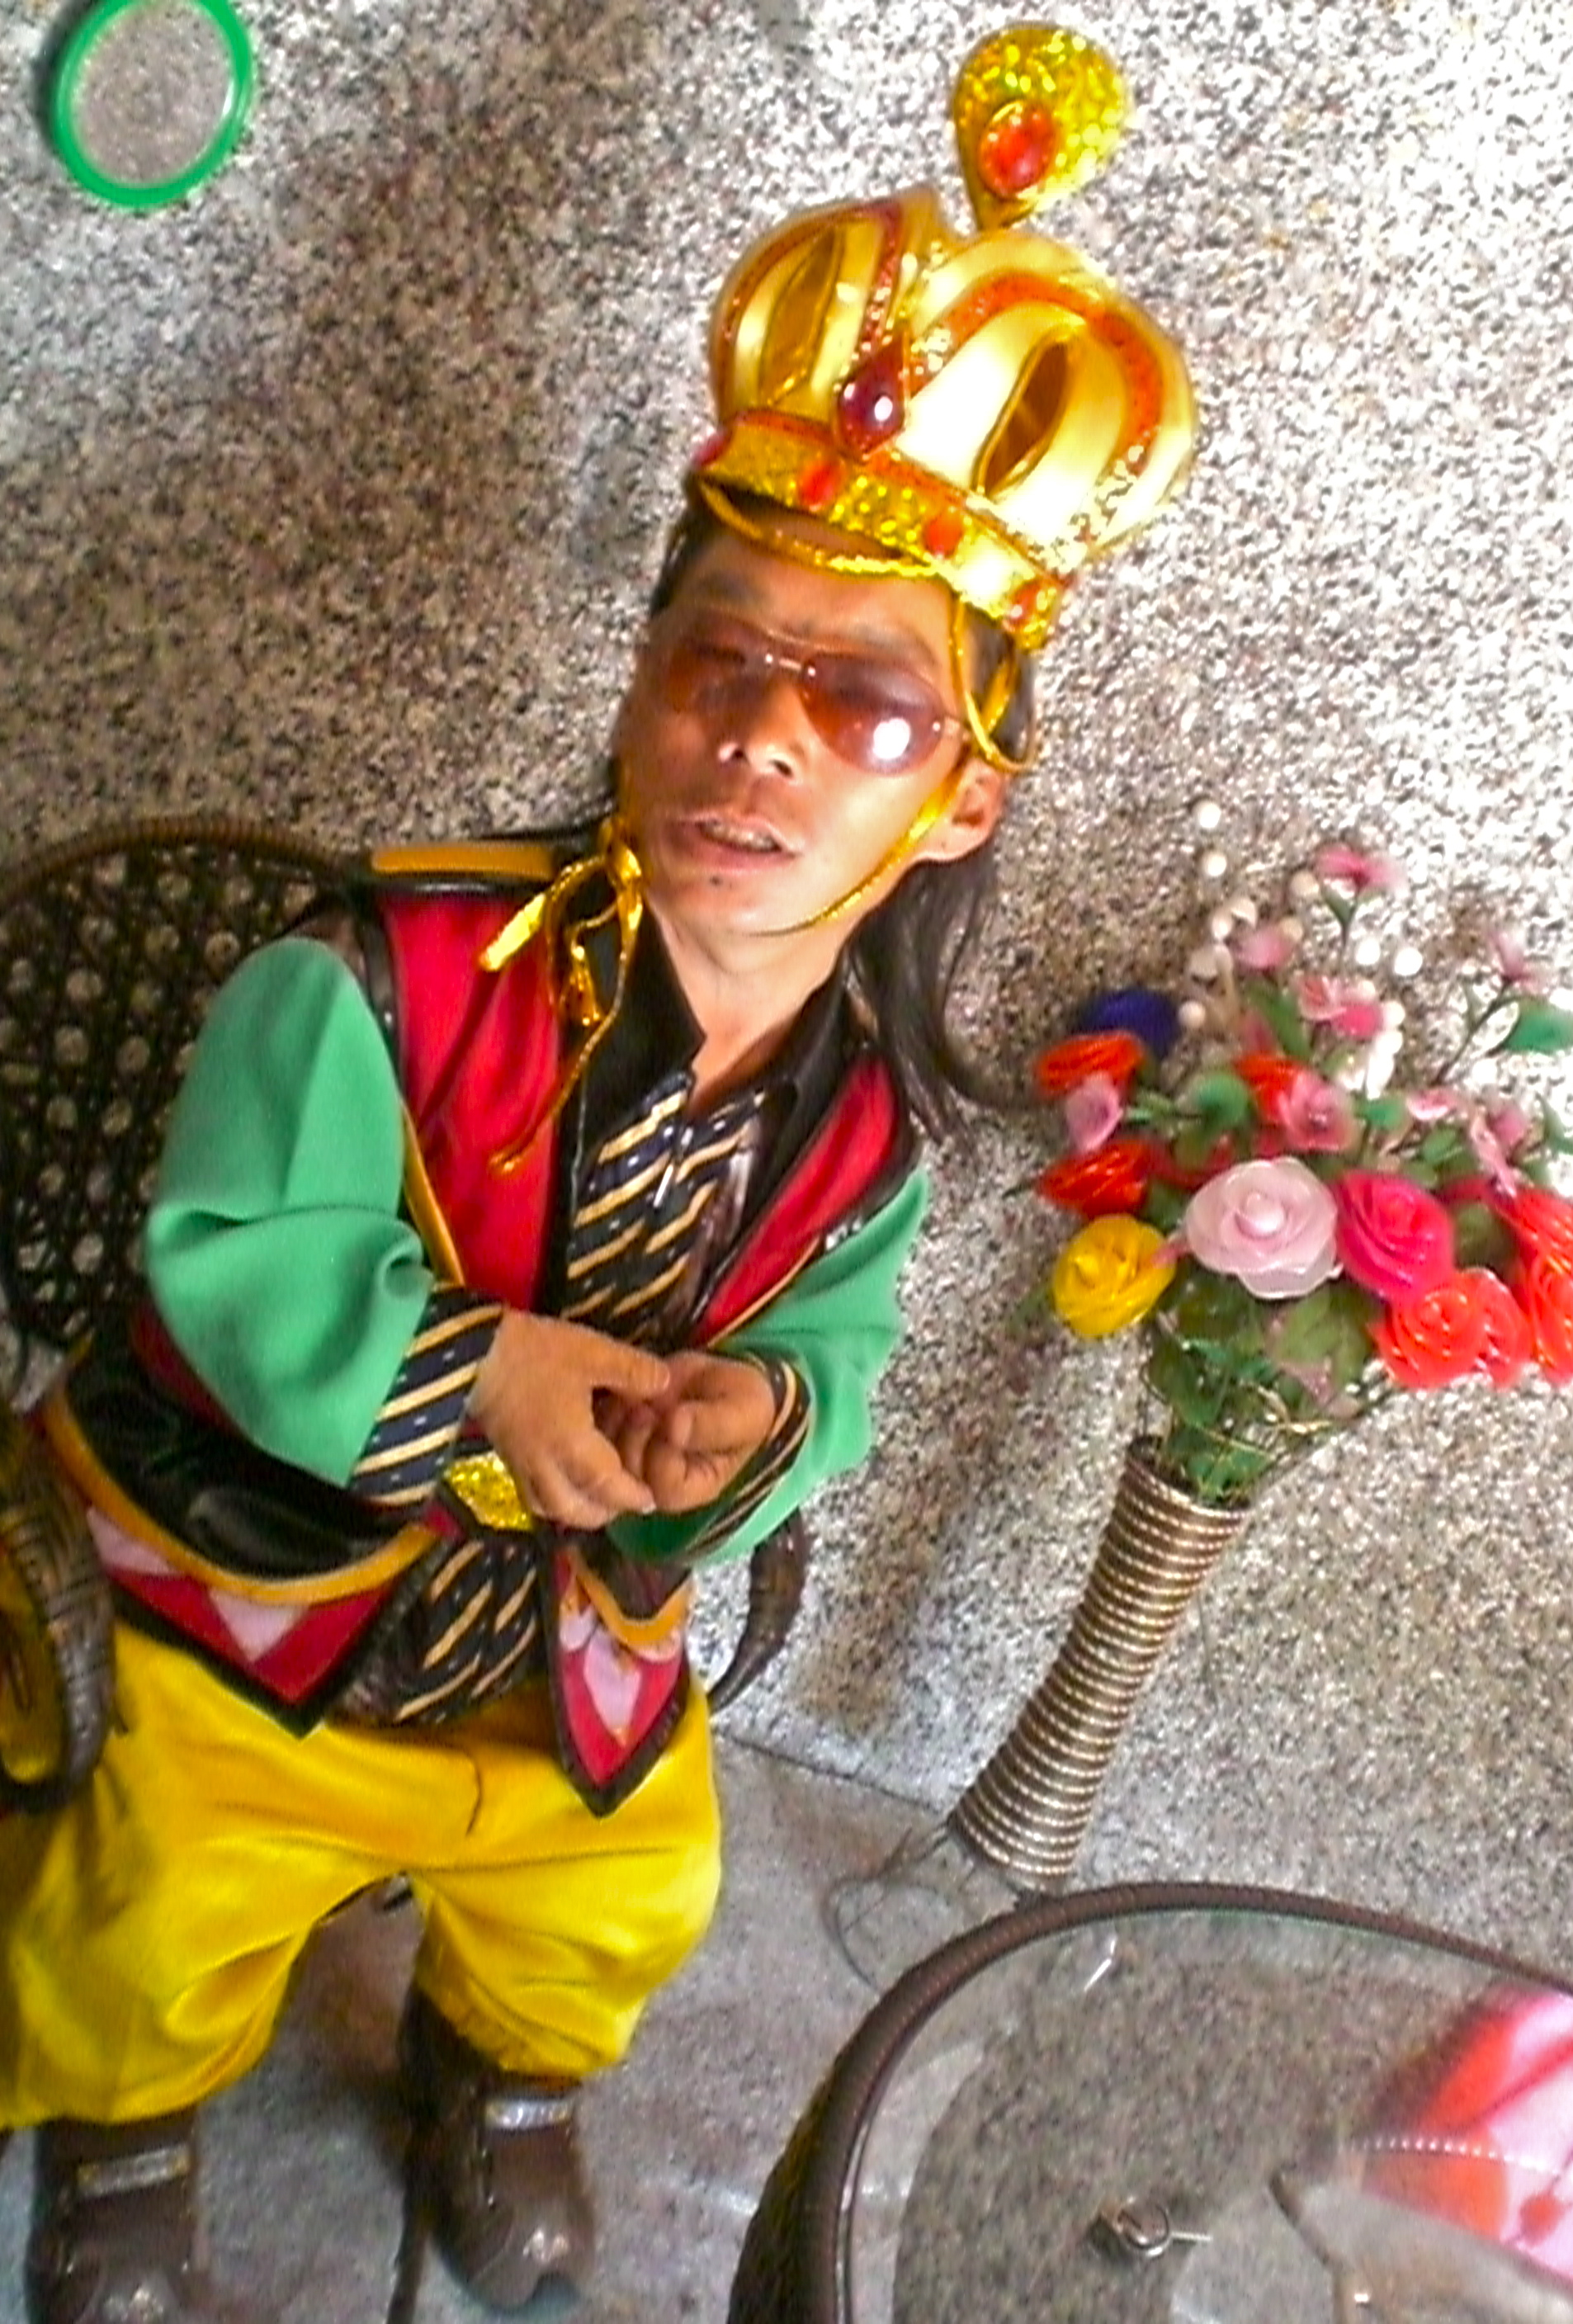 Wu Zi Ming, dressed for his role as king of the Kingdom of the Dwarfs in his palace.  (C) Remko Tanis